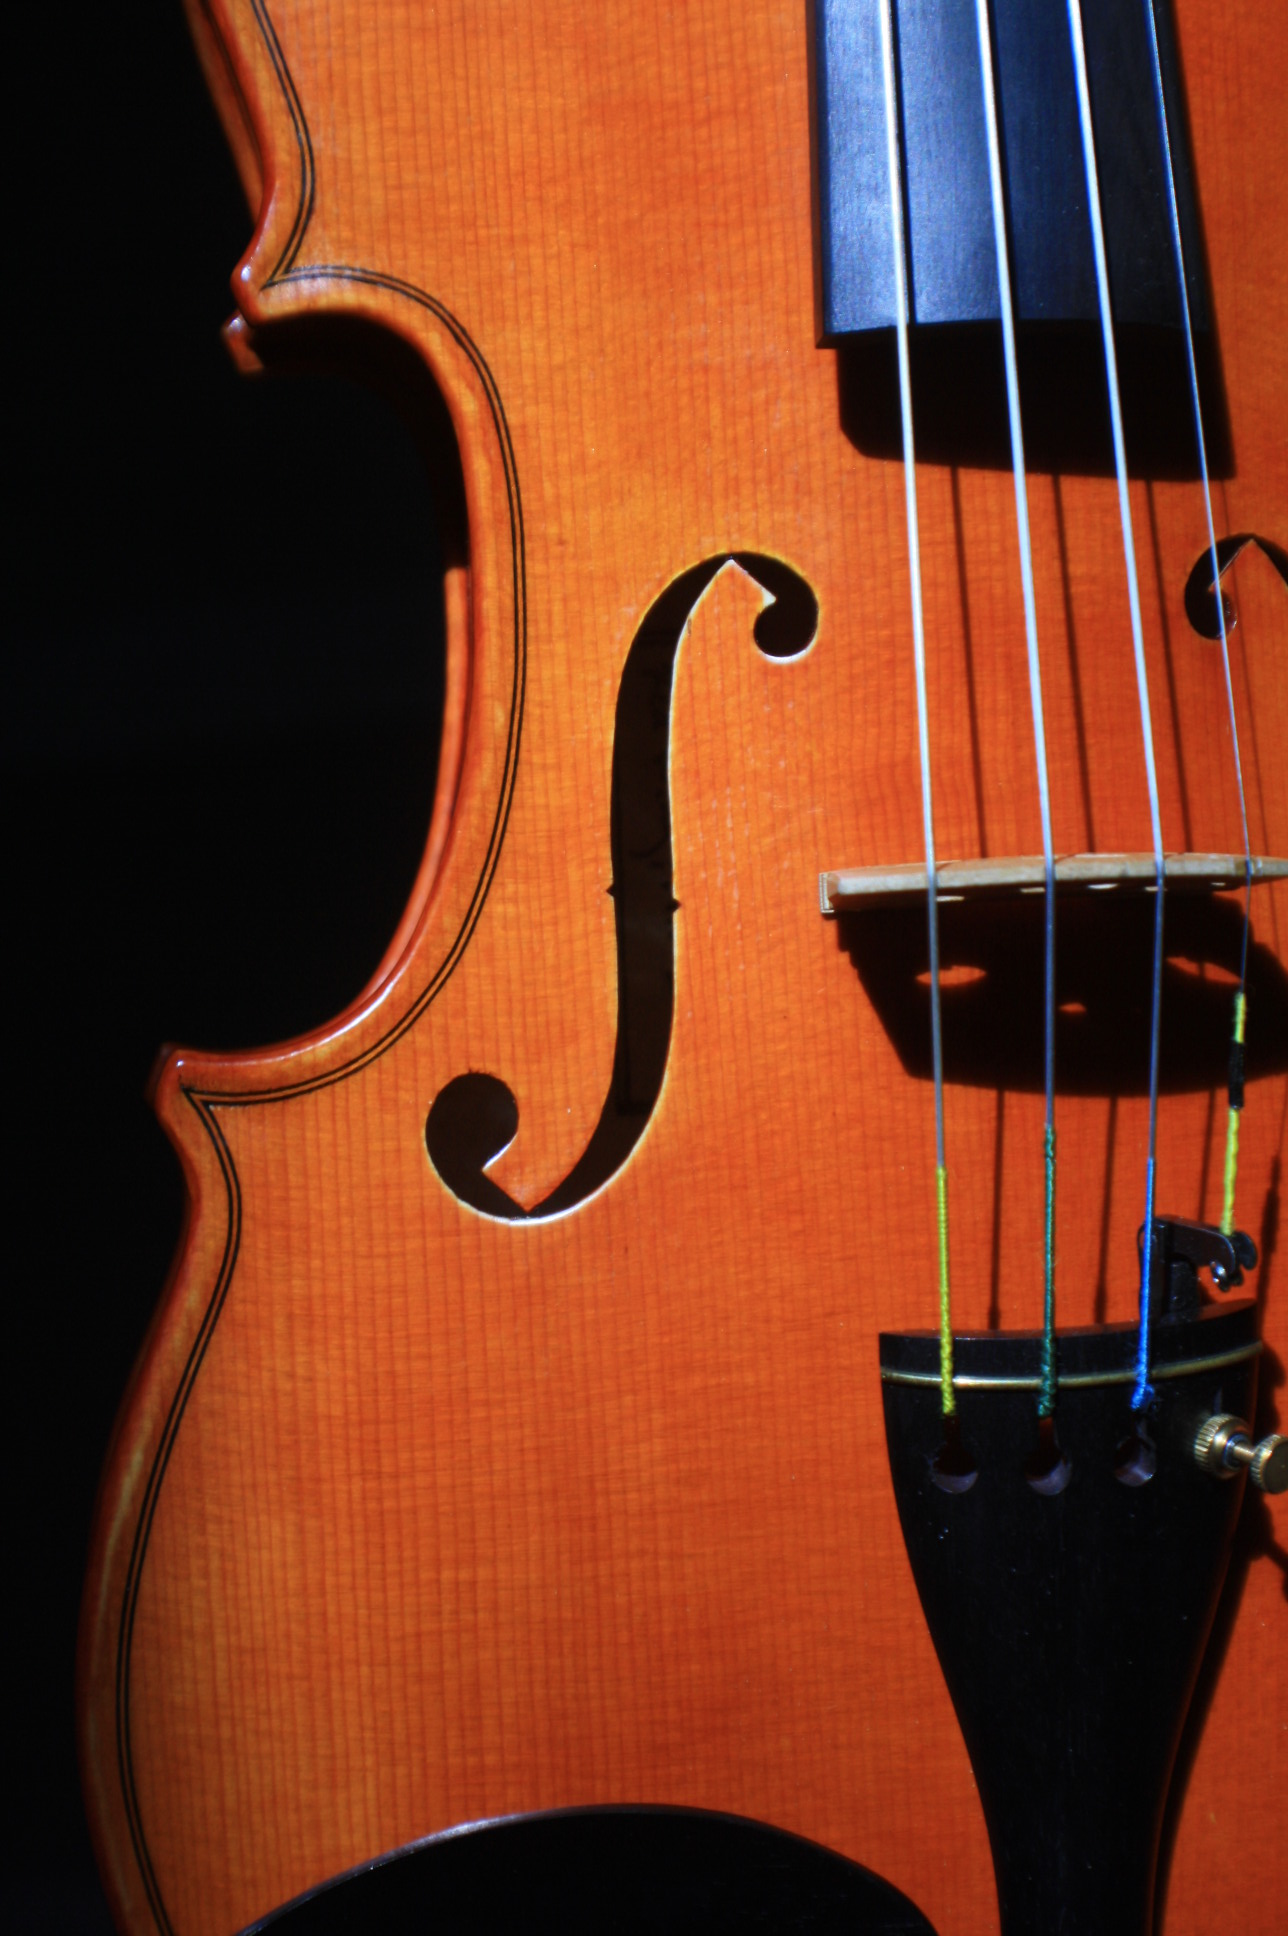 Violin f-holes and bridge